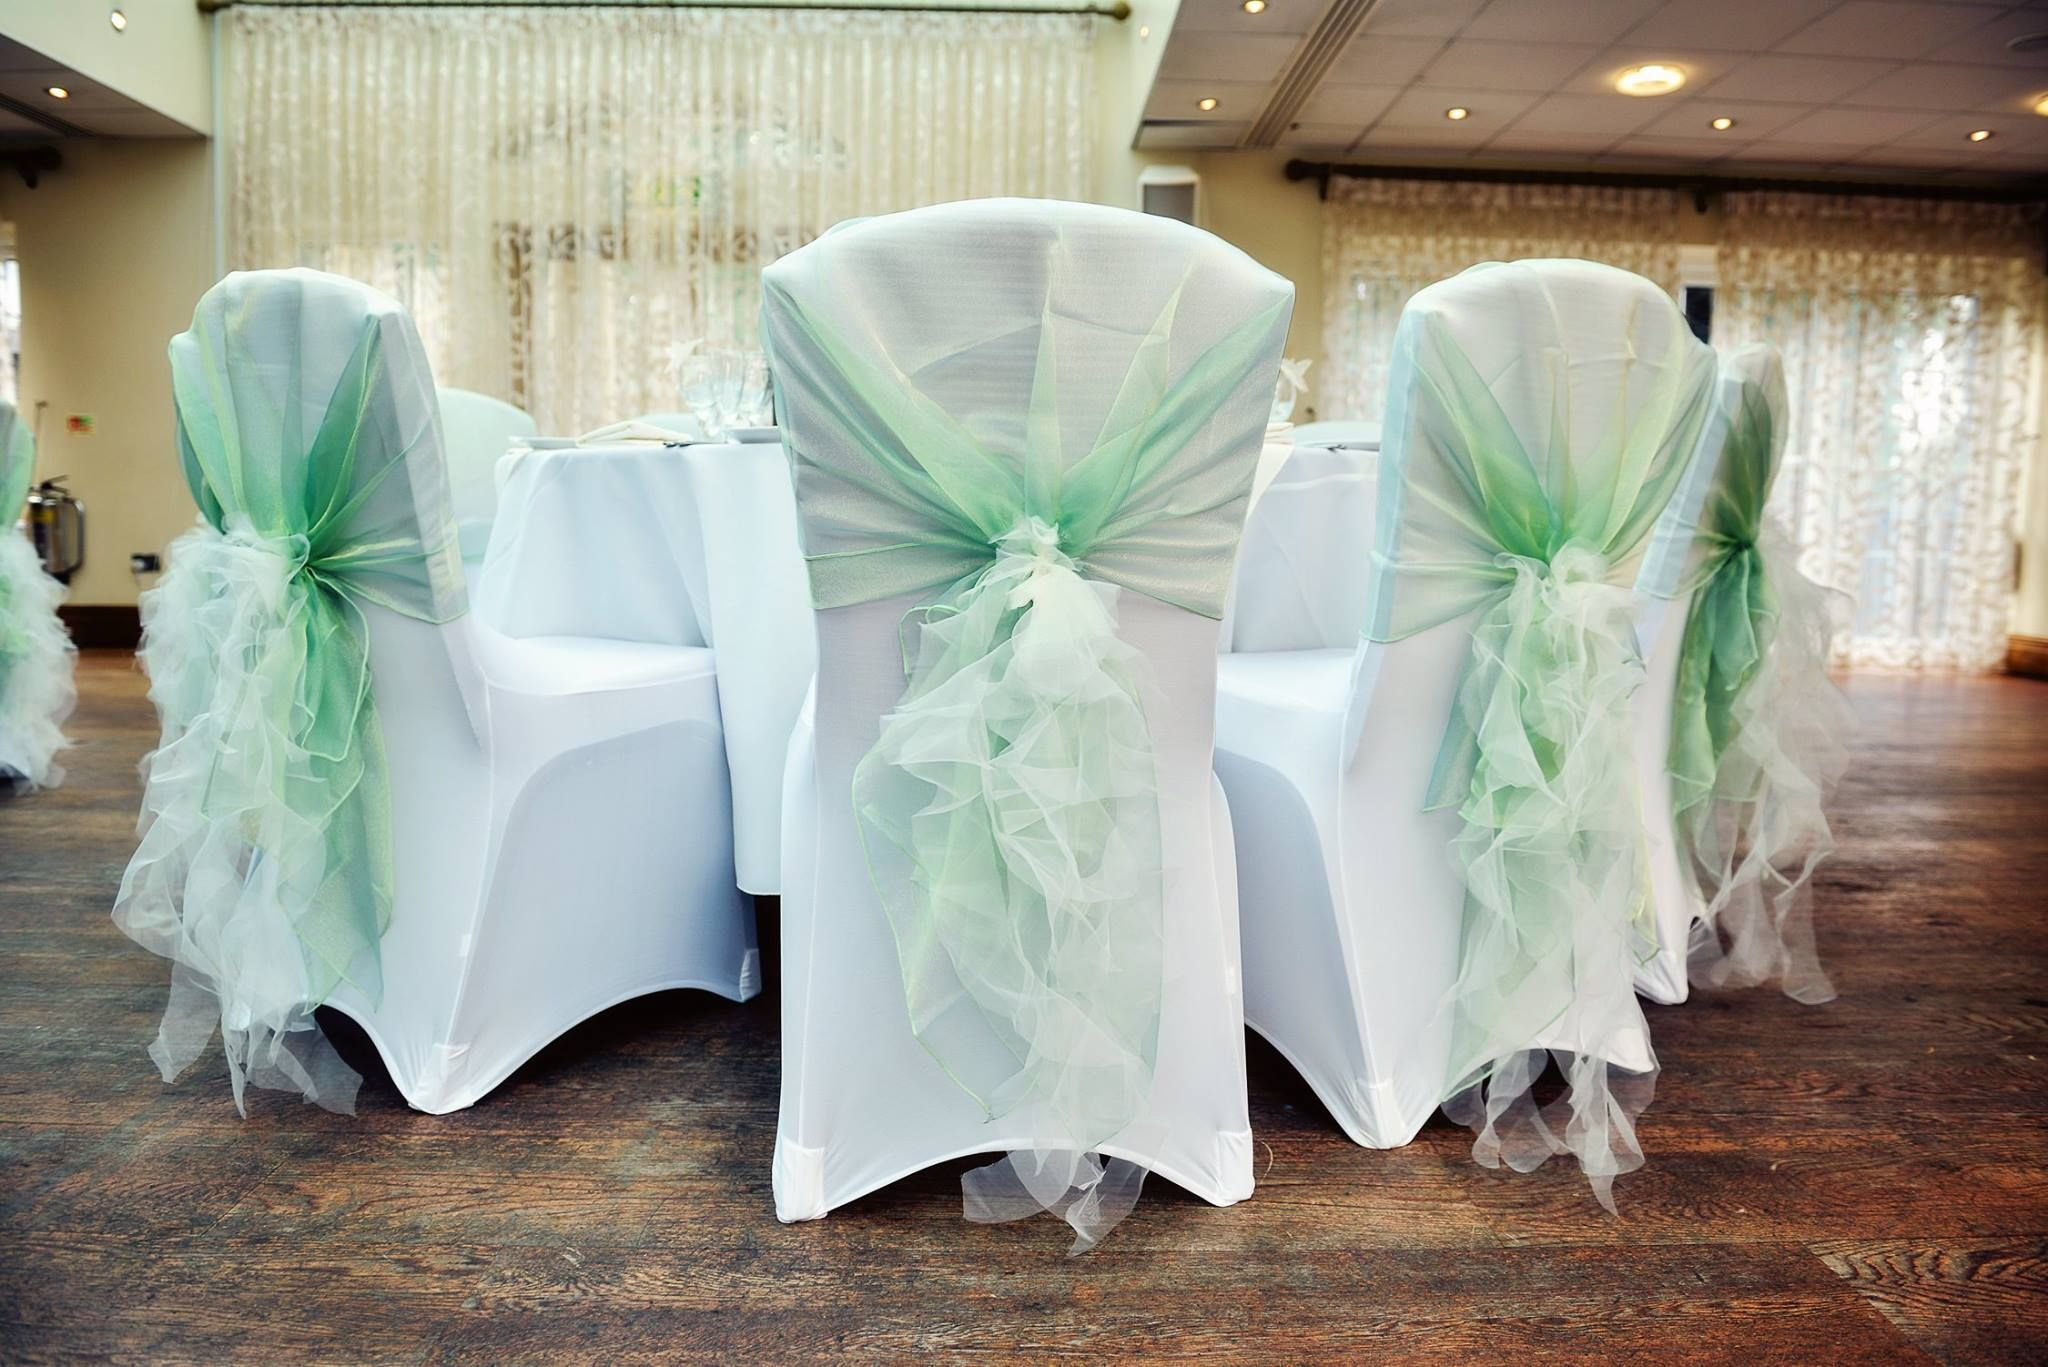 Chair Cover Ideas Chair Cover Inspiration Chair Covers Chair